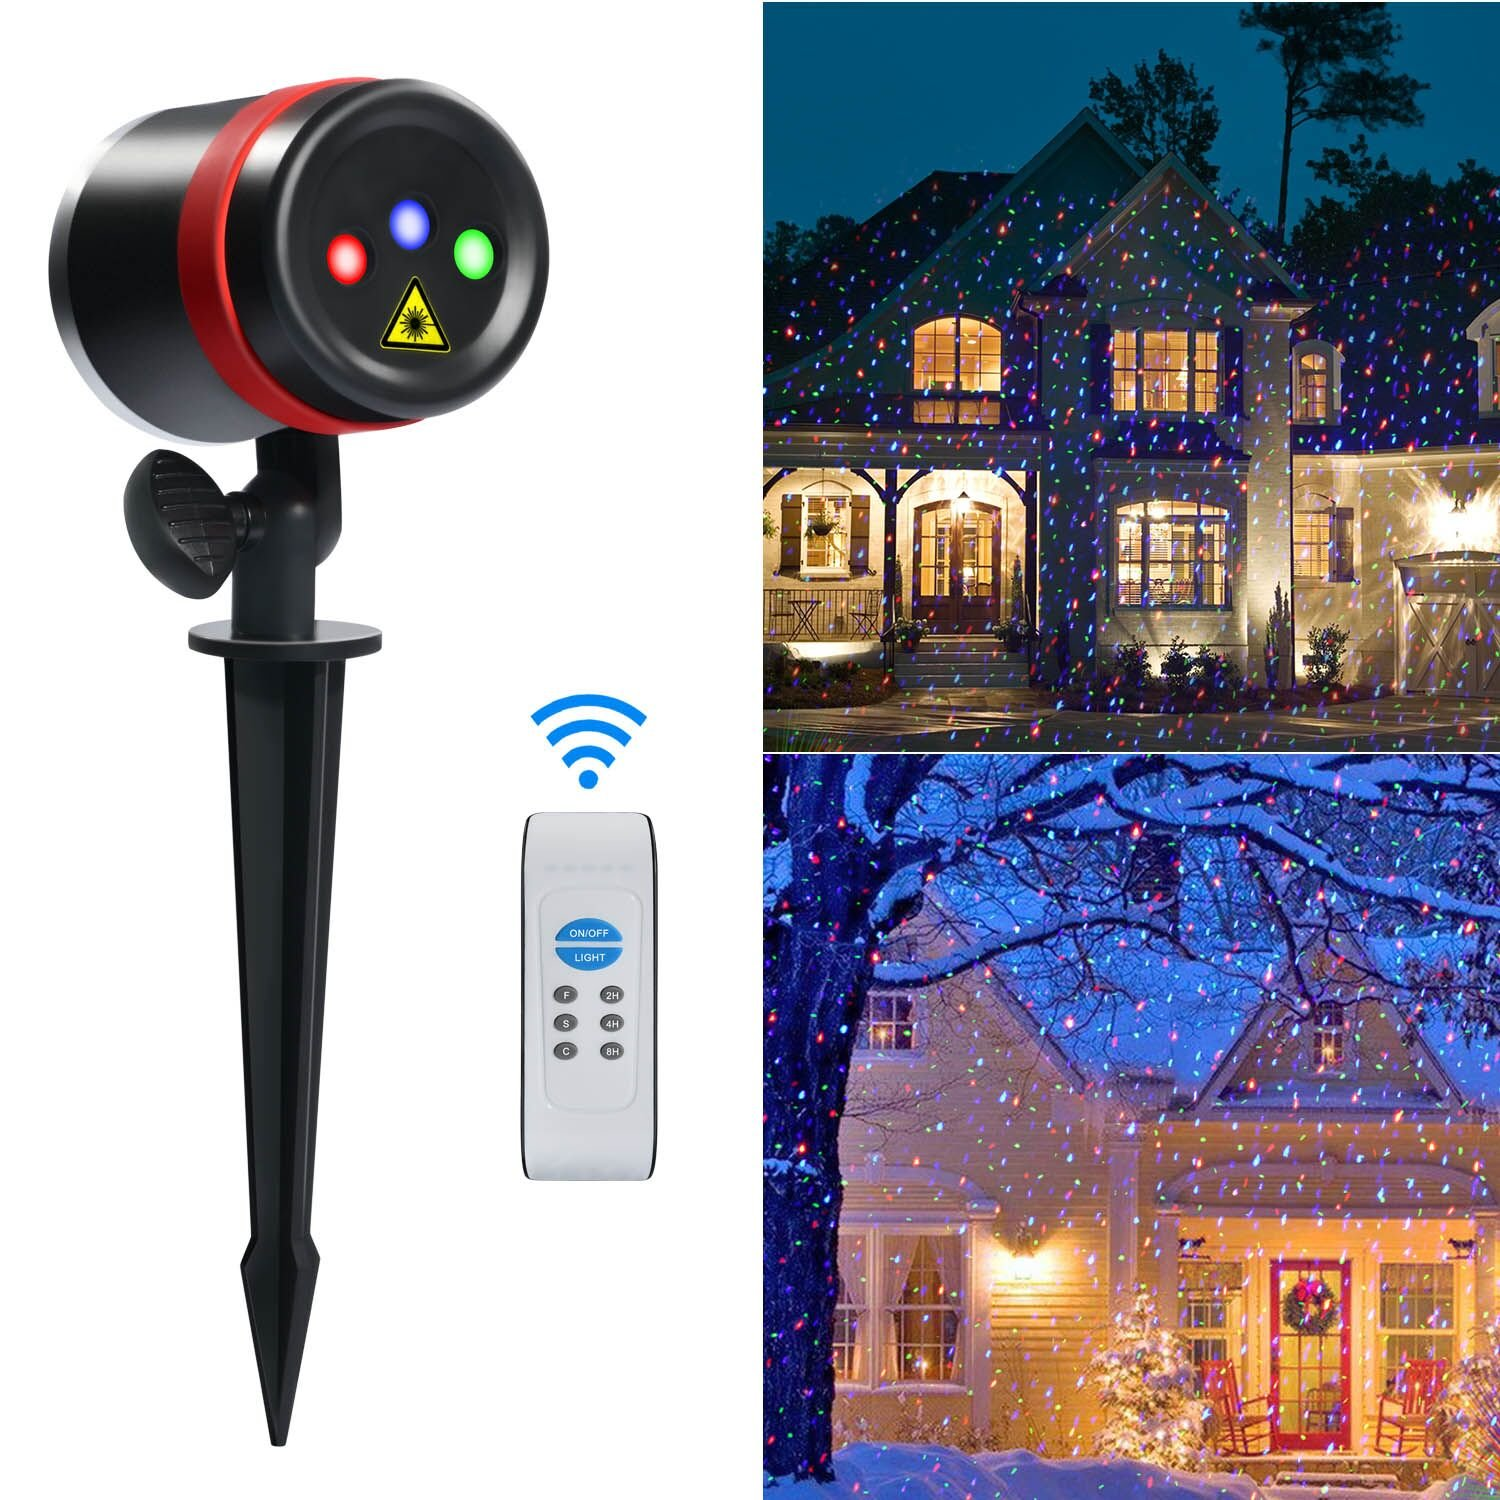 Laser Christmas Lights, ALPULON Red Green and Blue Star Projector,Waterproof Moving Star Laser with RF Wireless Remote and 8 Lighting Modes for Christmas, Holiday, Party, Garden Decoration.